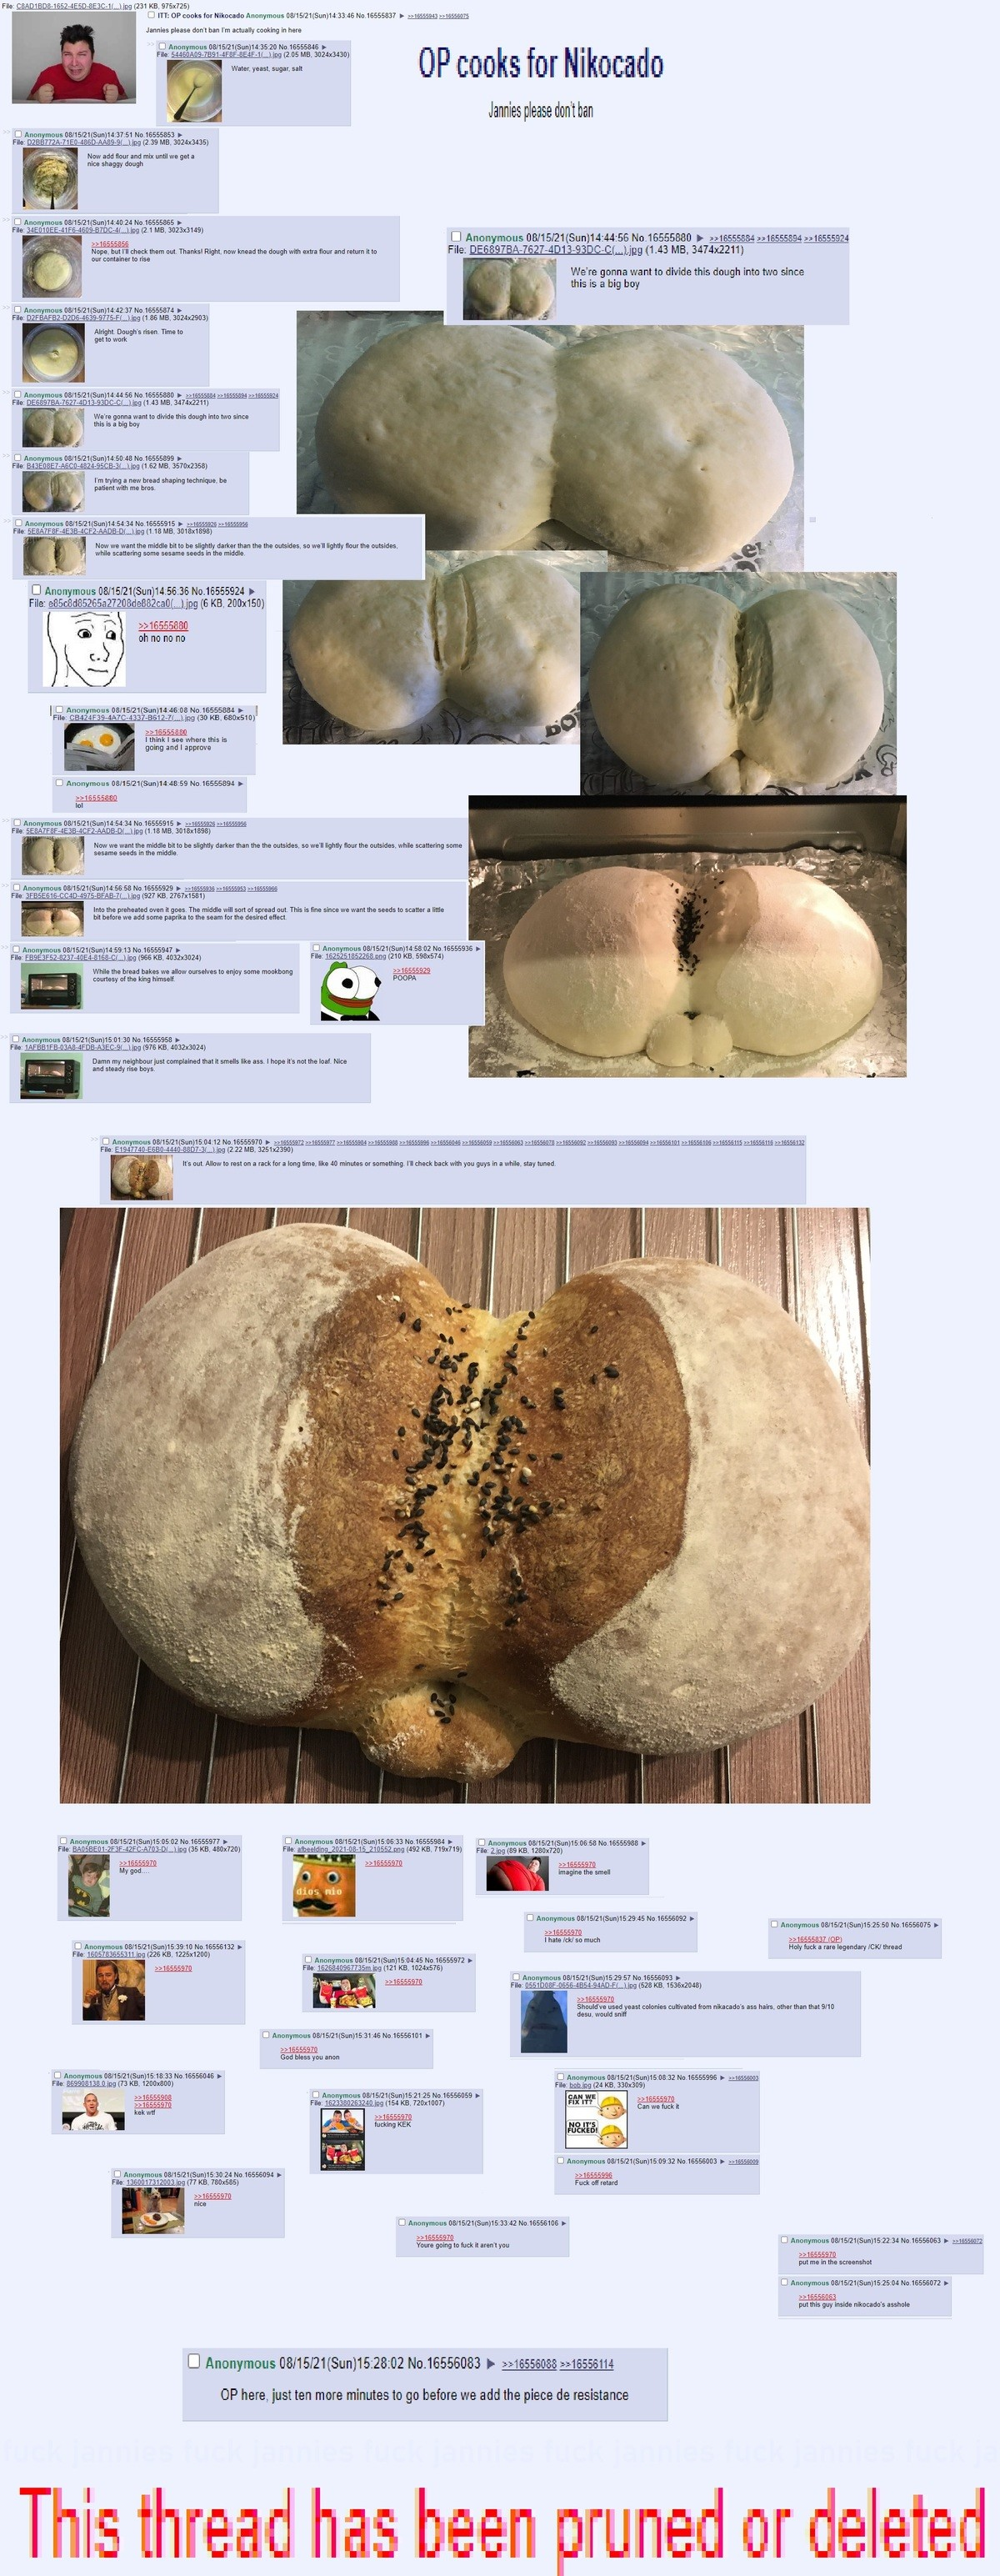 Nikocado bread. .. Jesus. Decades after the guy is dead there will be talks of his horrifying asshole.